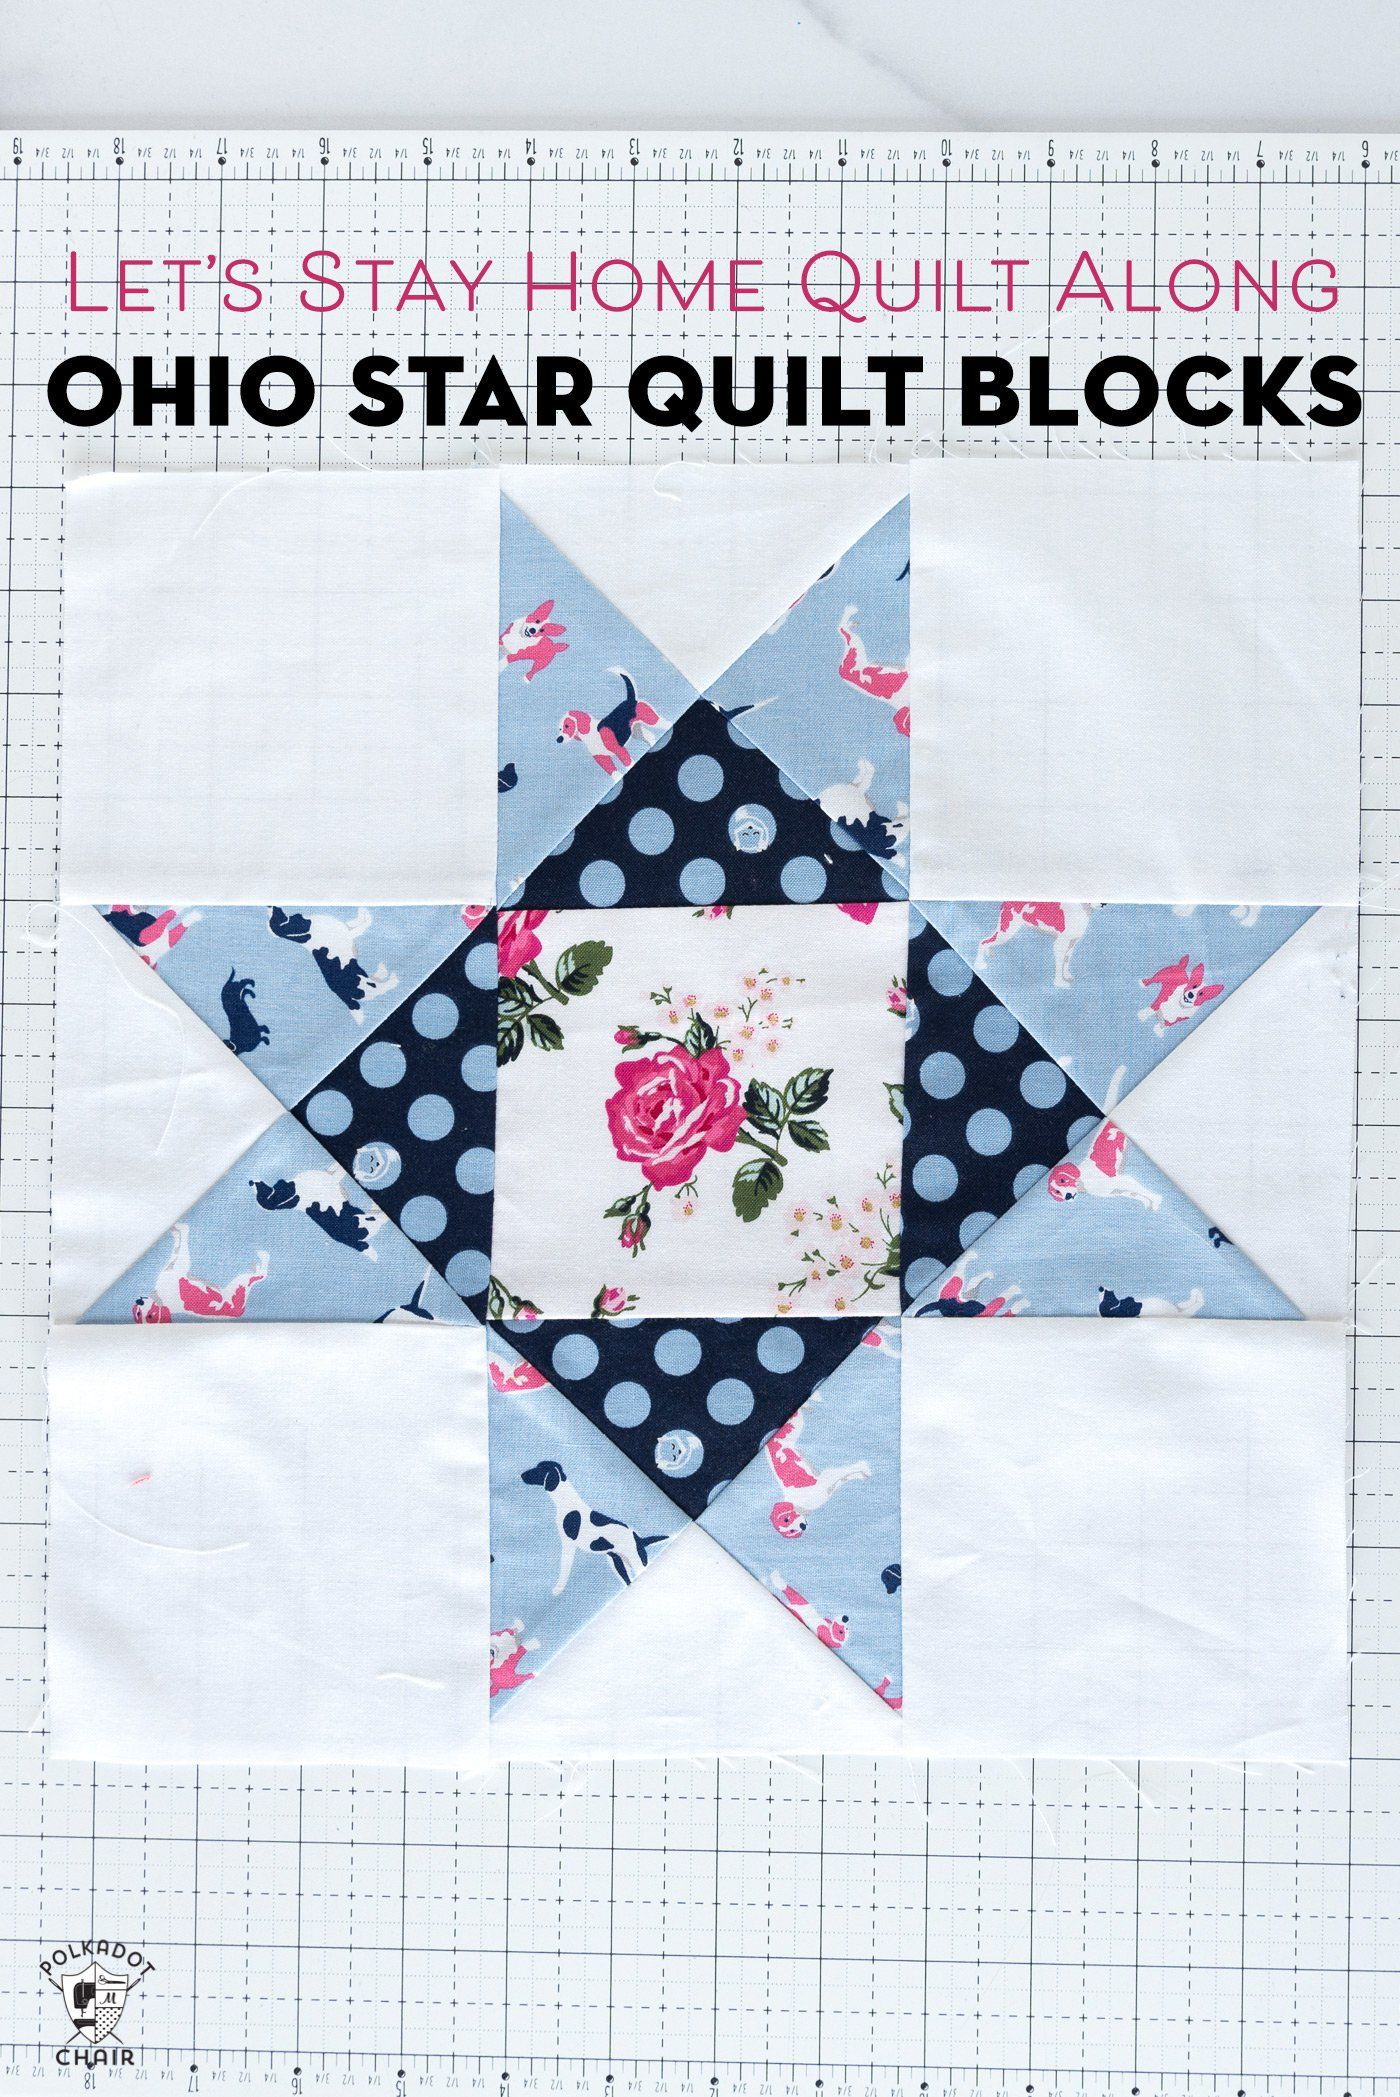 Summer Quilt Along; Ohio Star Quilt Blocks | Polka Dot Chair